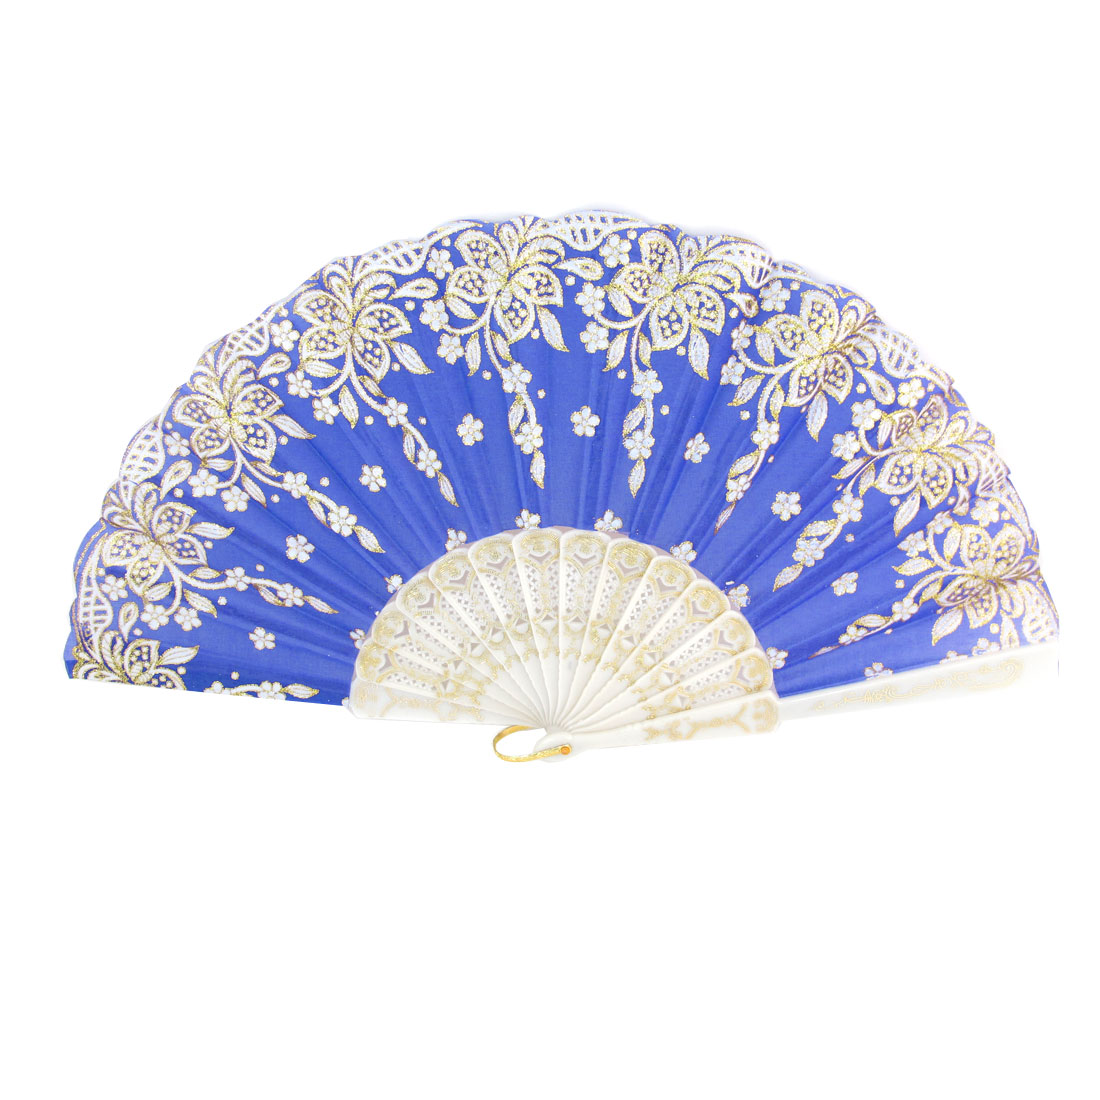 Flower Print Plastic Ribs Foldable Royal Blue Hand Fan for Dancing